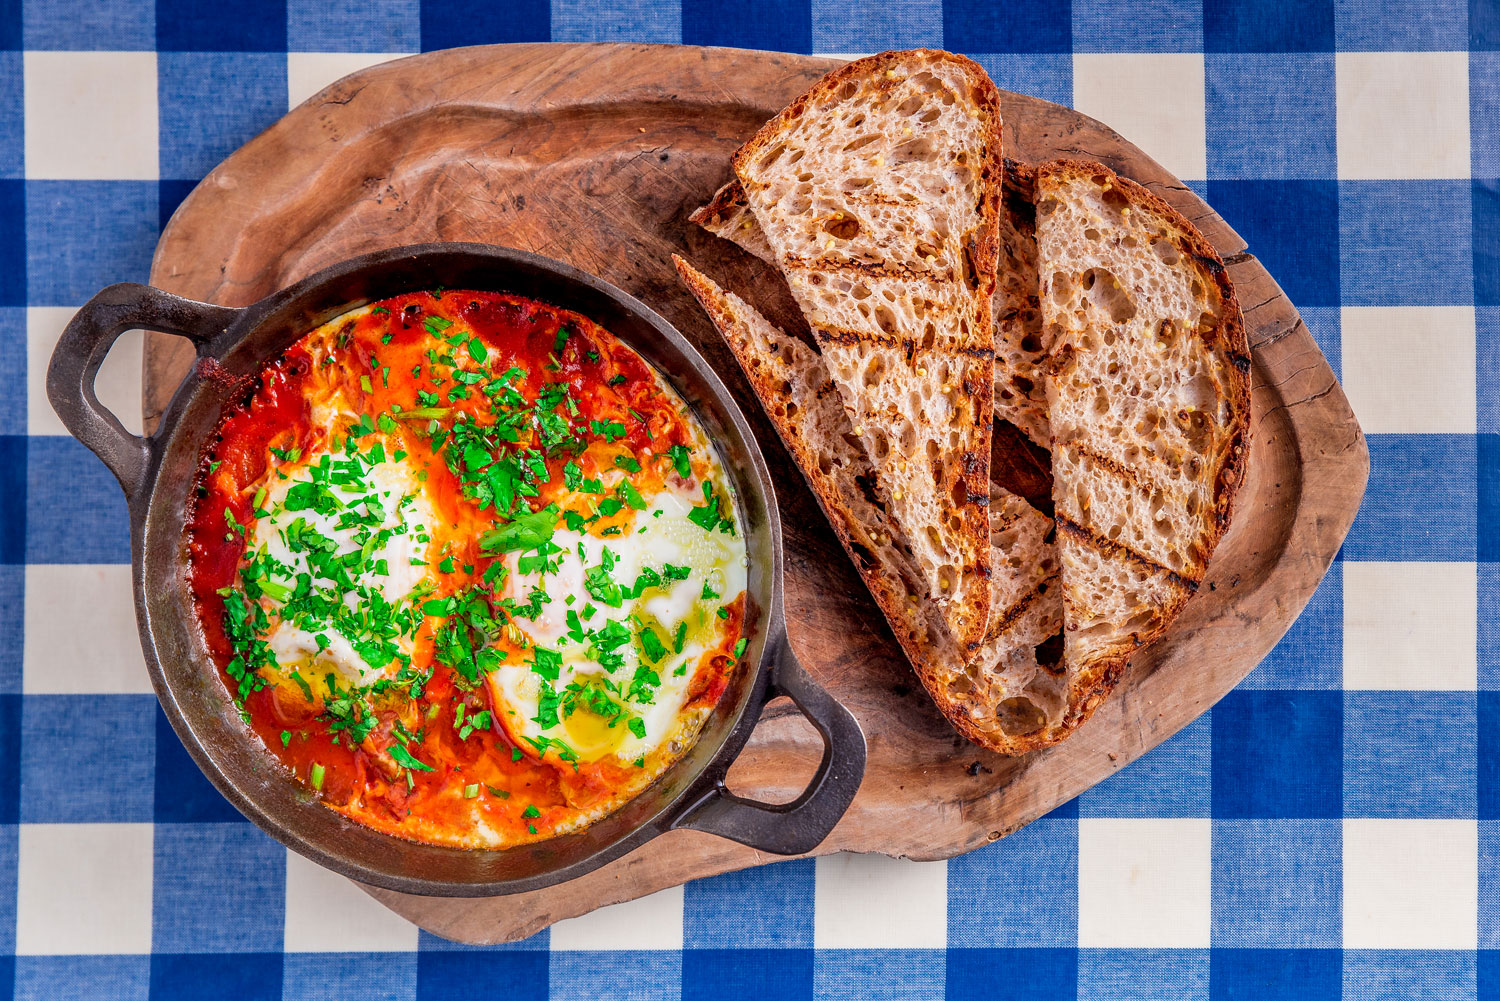 Megan's restaurants baked eggs in tomatoes with bread